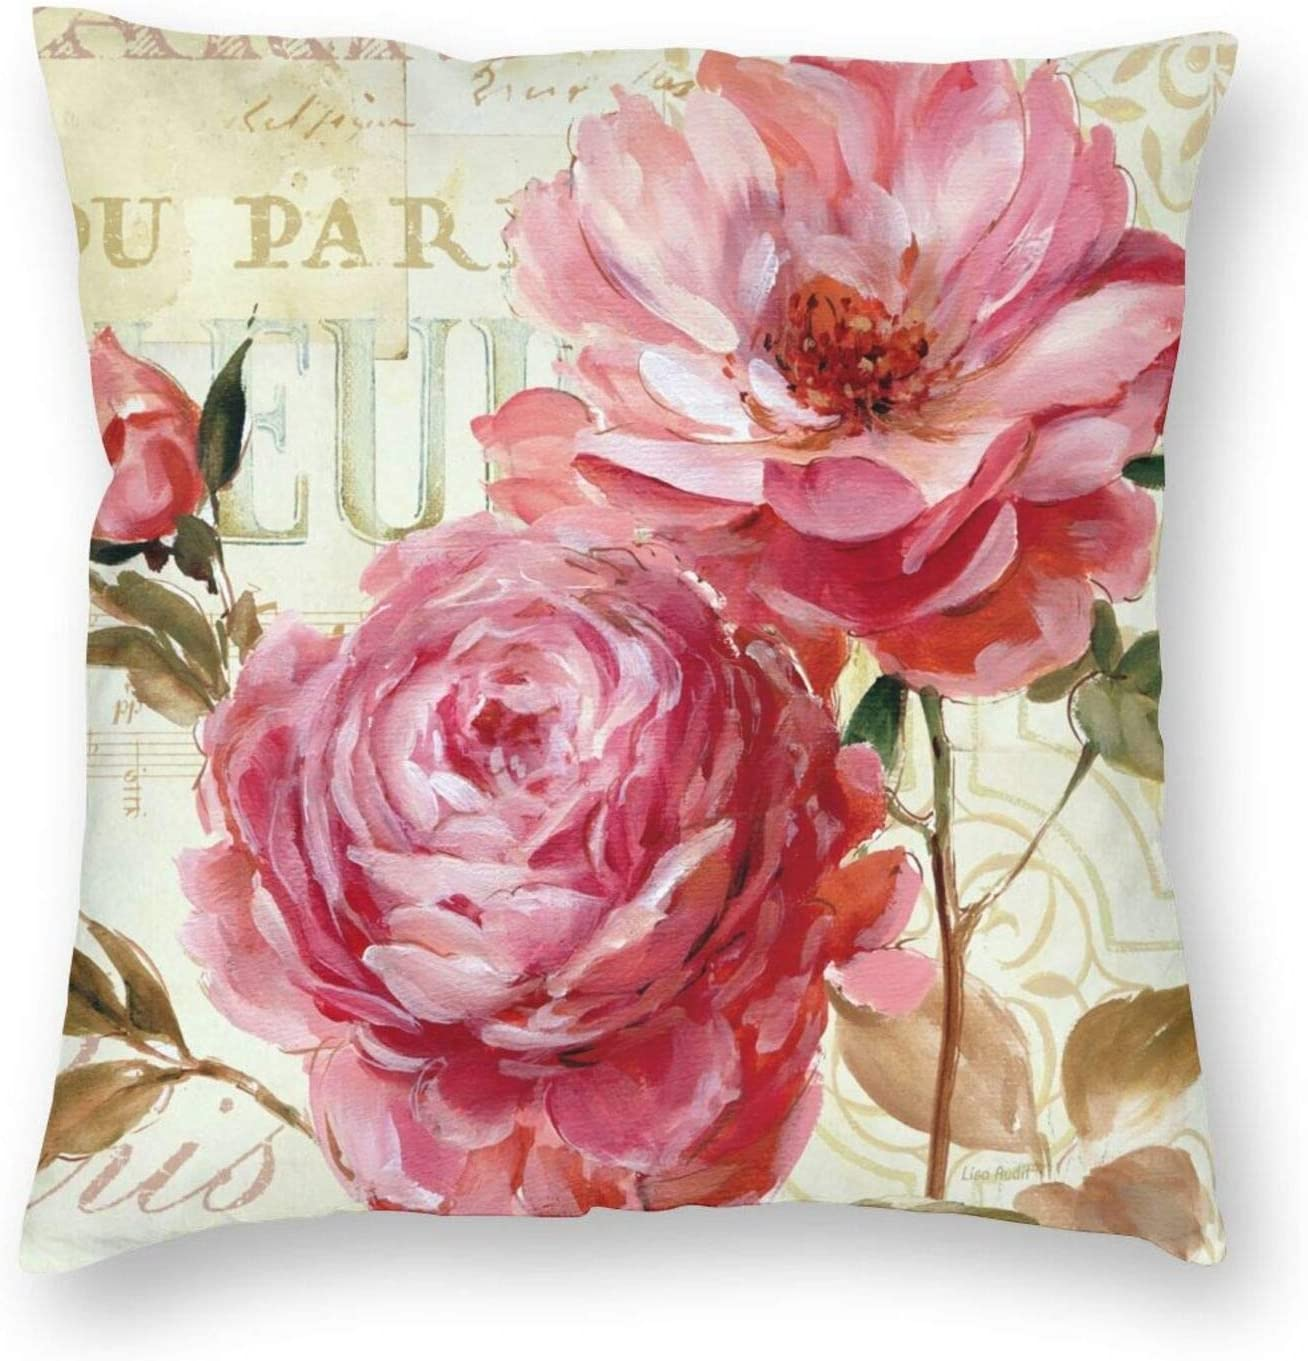 Retro Floral Vintage Farmhouse Flower Leaf Pink Garden Peony Throw Pillow Cover Home Decor Modern Square Decorative Pillowcase 18x18 for Home Sofa Couch Bed Living Room Car Housewarming Gifts